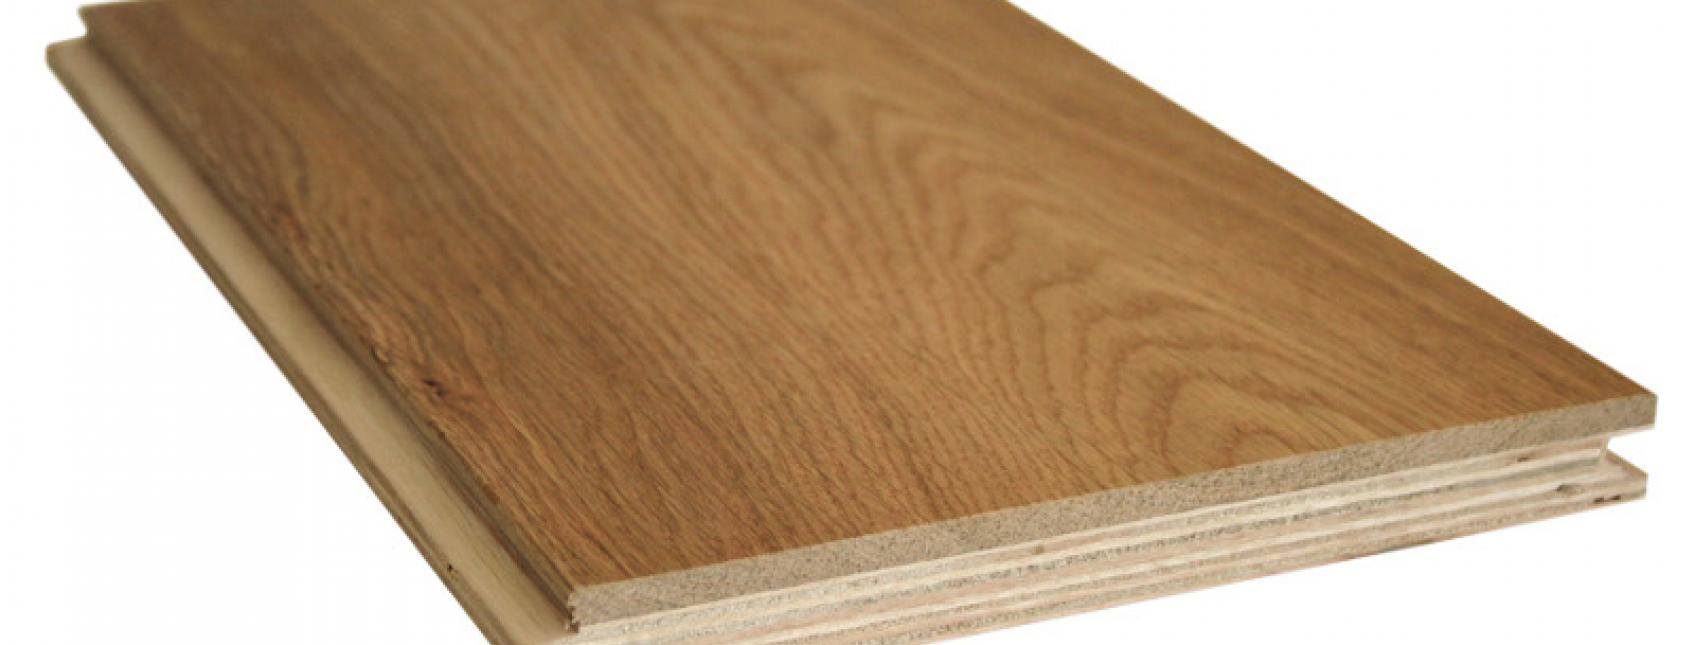 Free engineered wood sample image